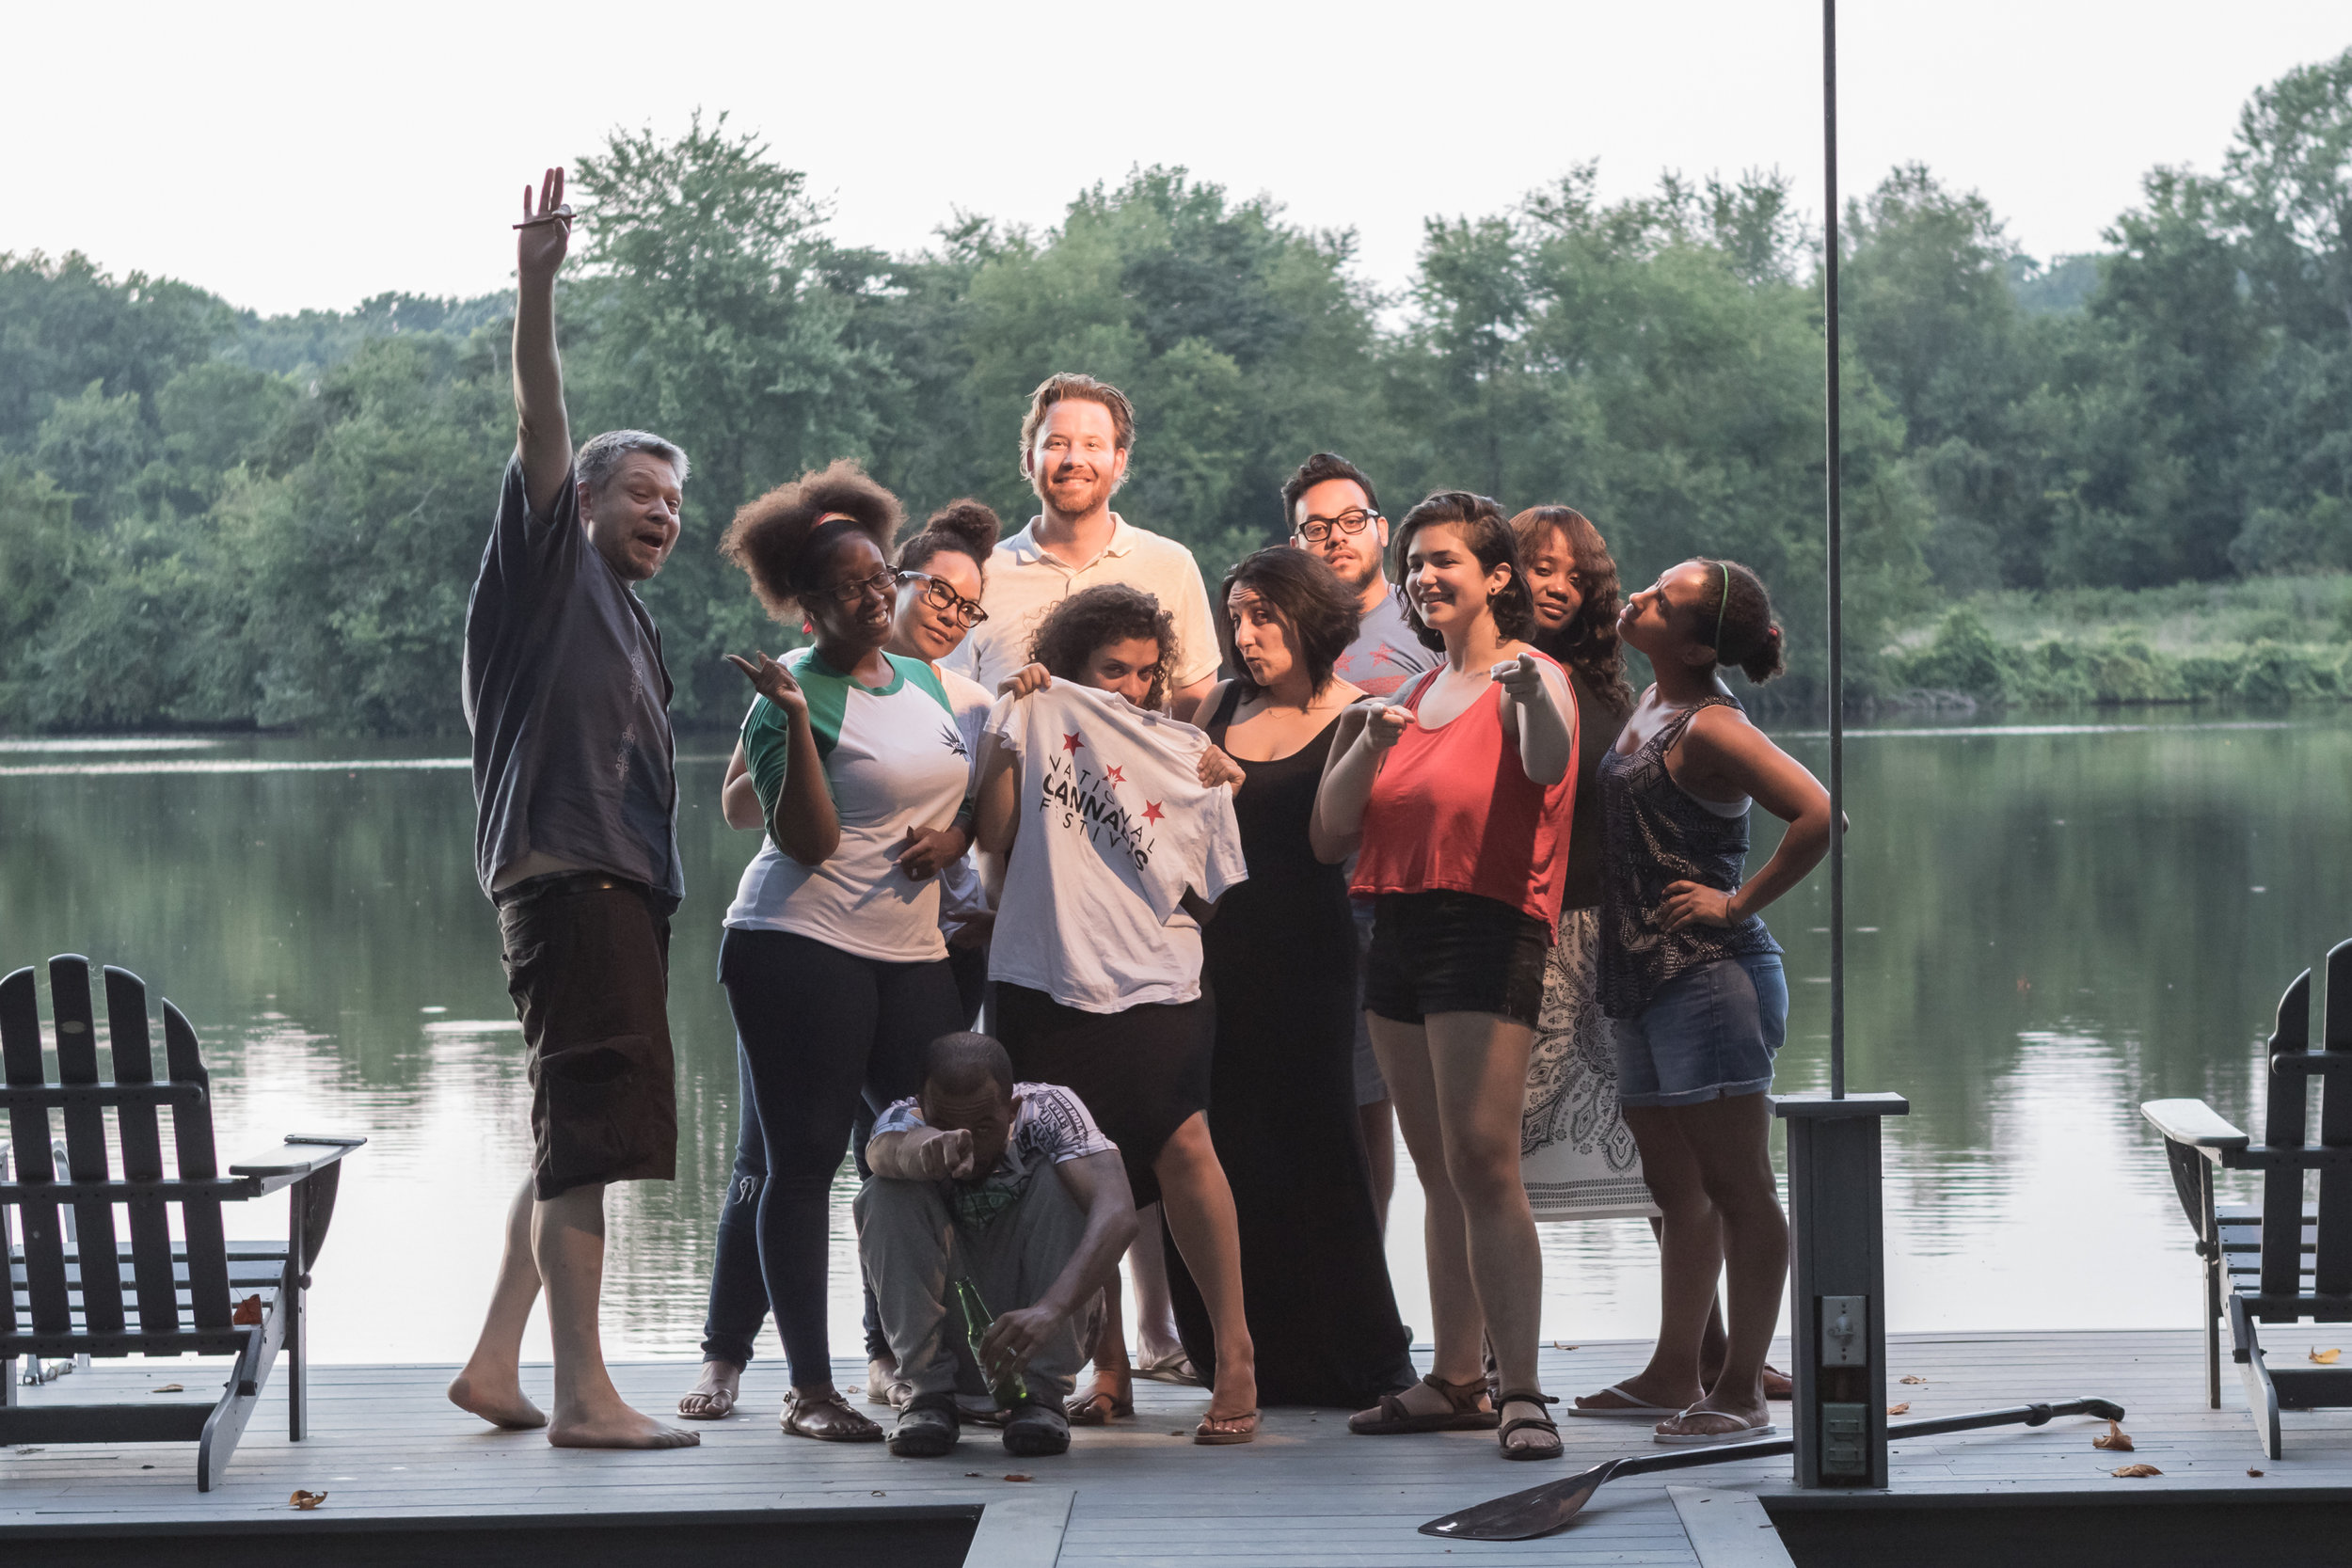 NCF Team Retreat, August, 2016. From left to right: Erik, Kalacey, Vanessa, Greg, Caroline (holding t-shirt), Nar, Erick, Laila, Nesha, Suey and Mouse (very front).